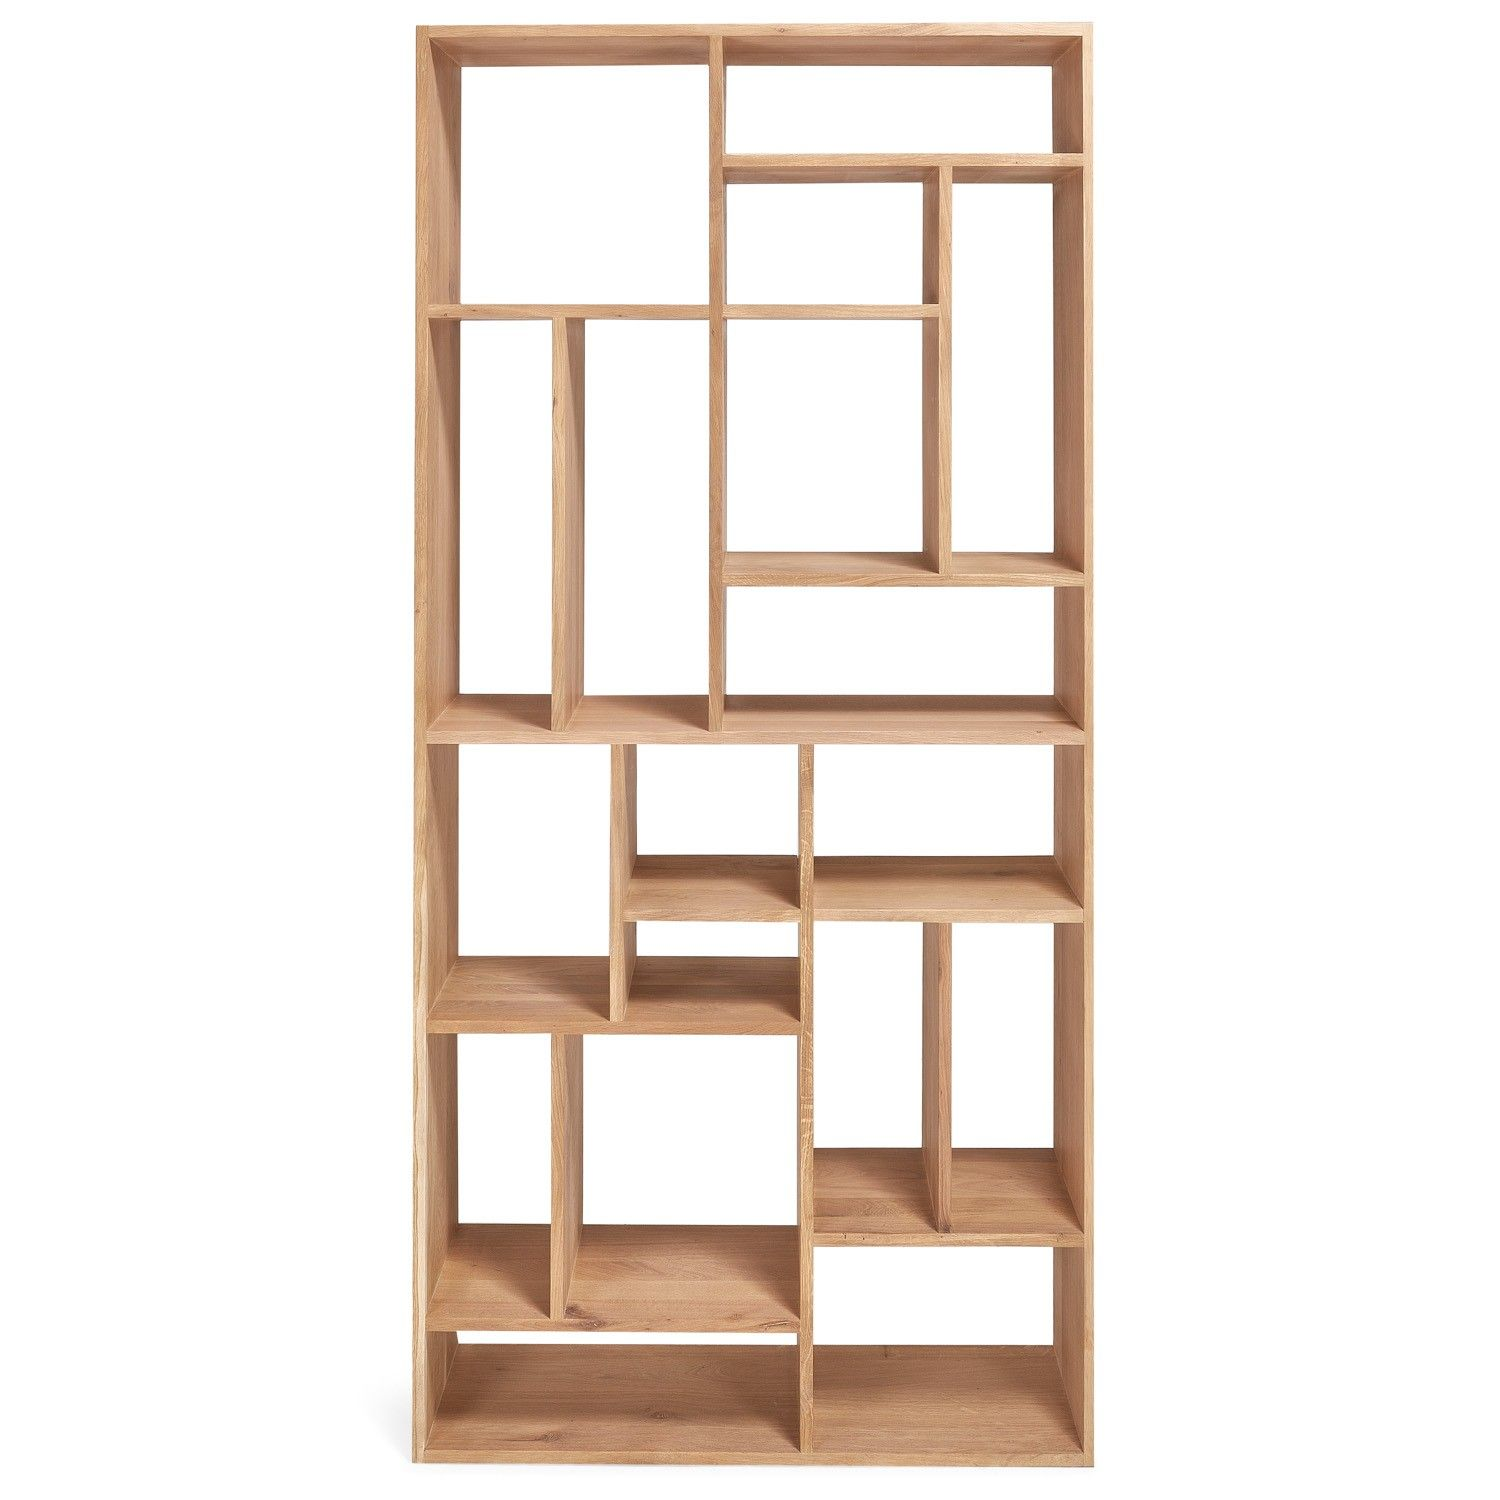 decoration decorative buy bookcase bookshel kitchen ladder systems book shelving the bookshelf shelves holder closed on bookshelves shelf wood white wall in mounted wooden mount bookcases to single